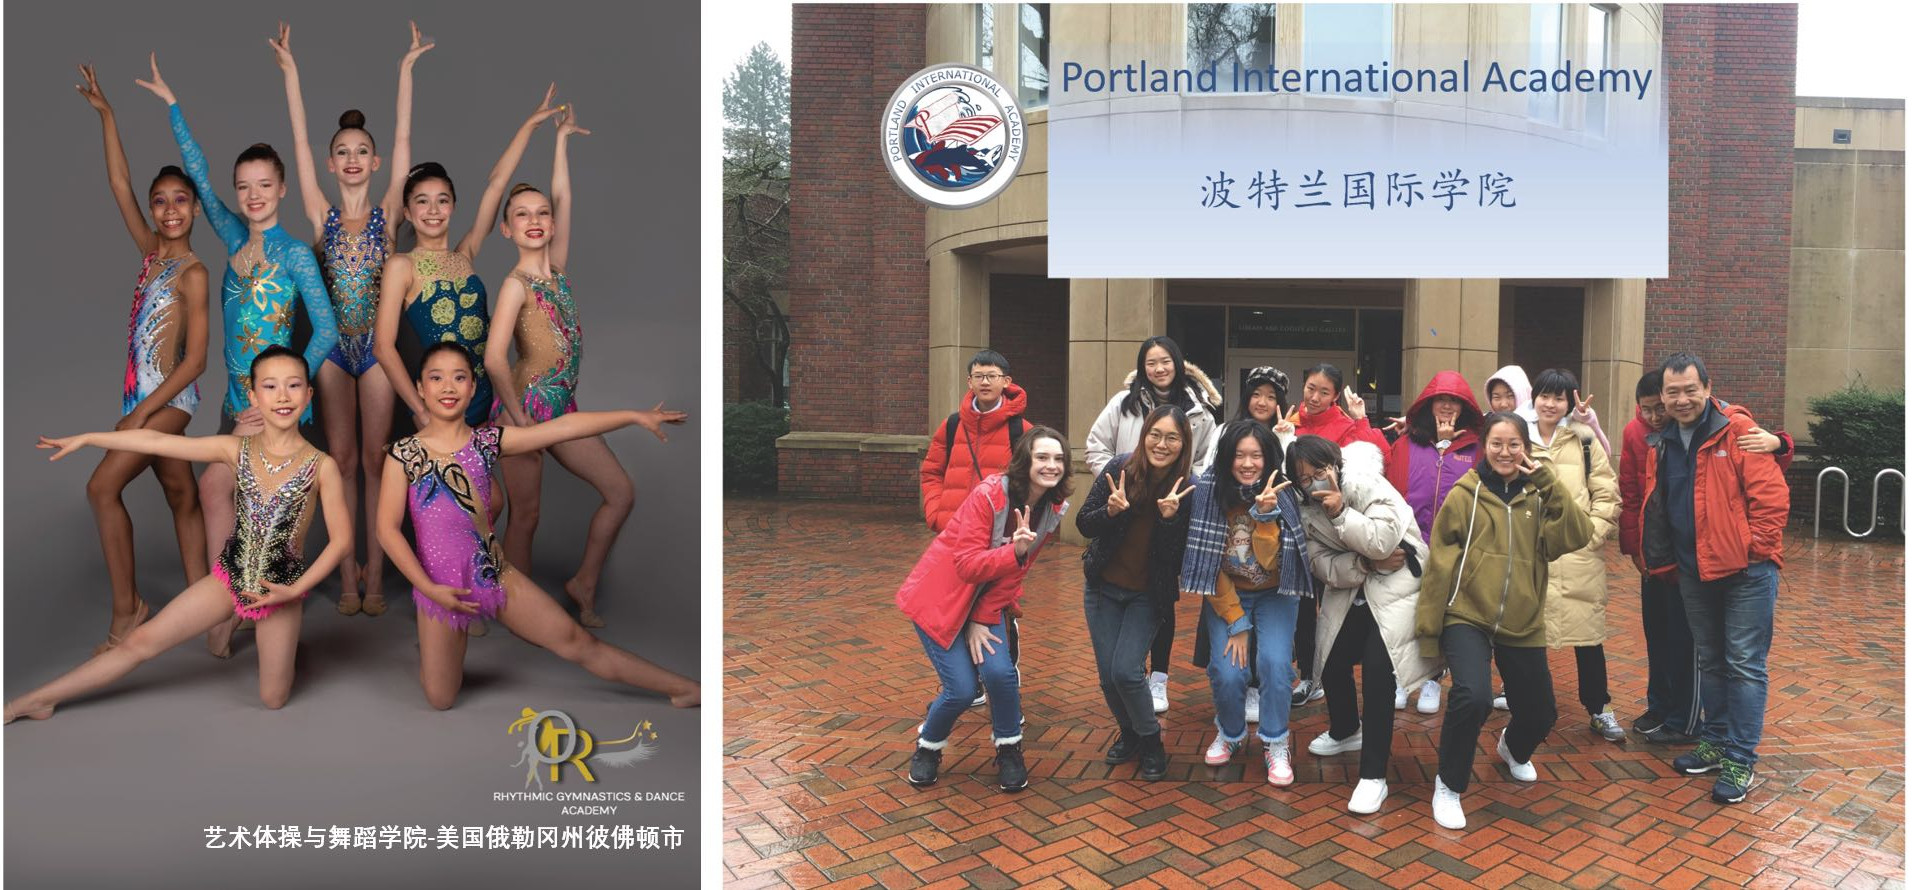 Portland International Academy